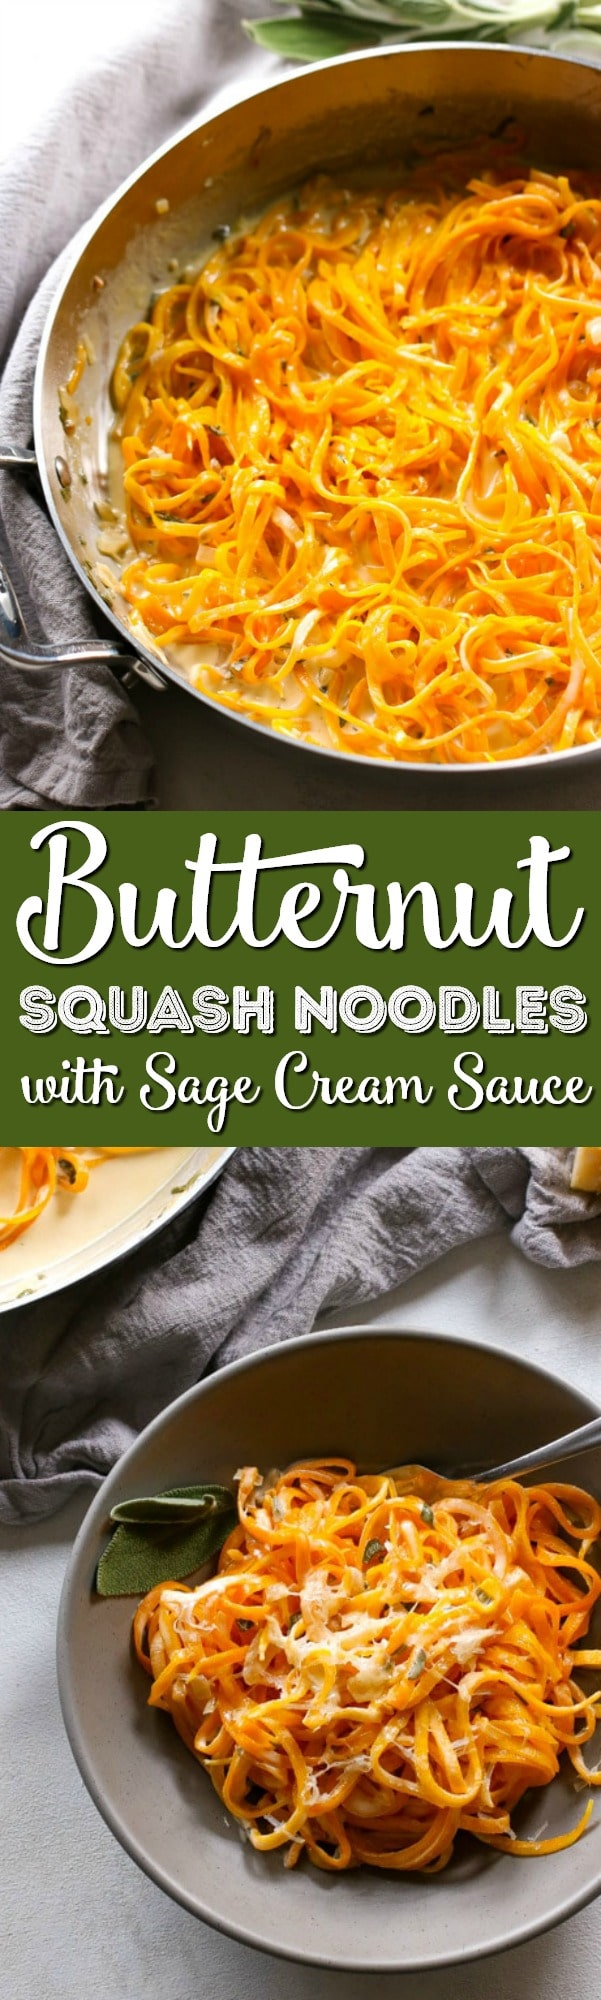 These Butternut Squash Noodles with Sage Cream Sauce are creamy, crunchy, and earthy! It's a super versatile meal - Add a protein of your choice, eat it as a side, or keep it vegetarian. via @sugarandsoulco